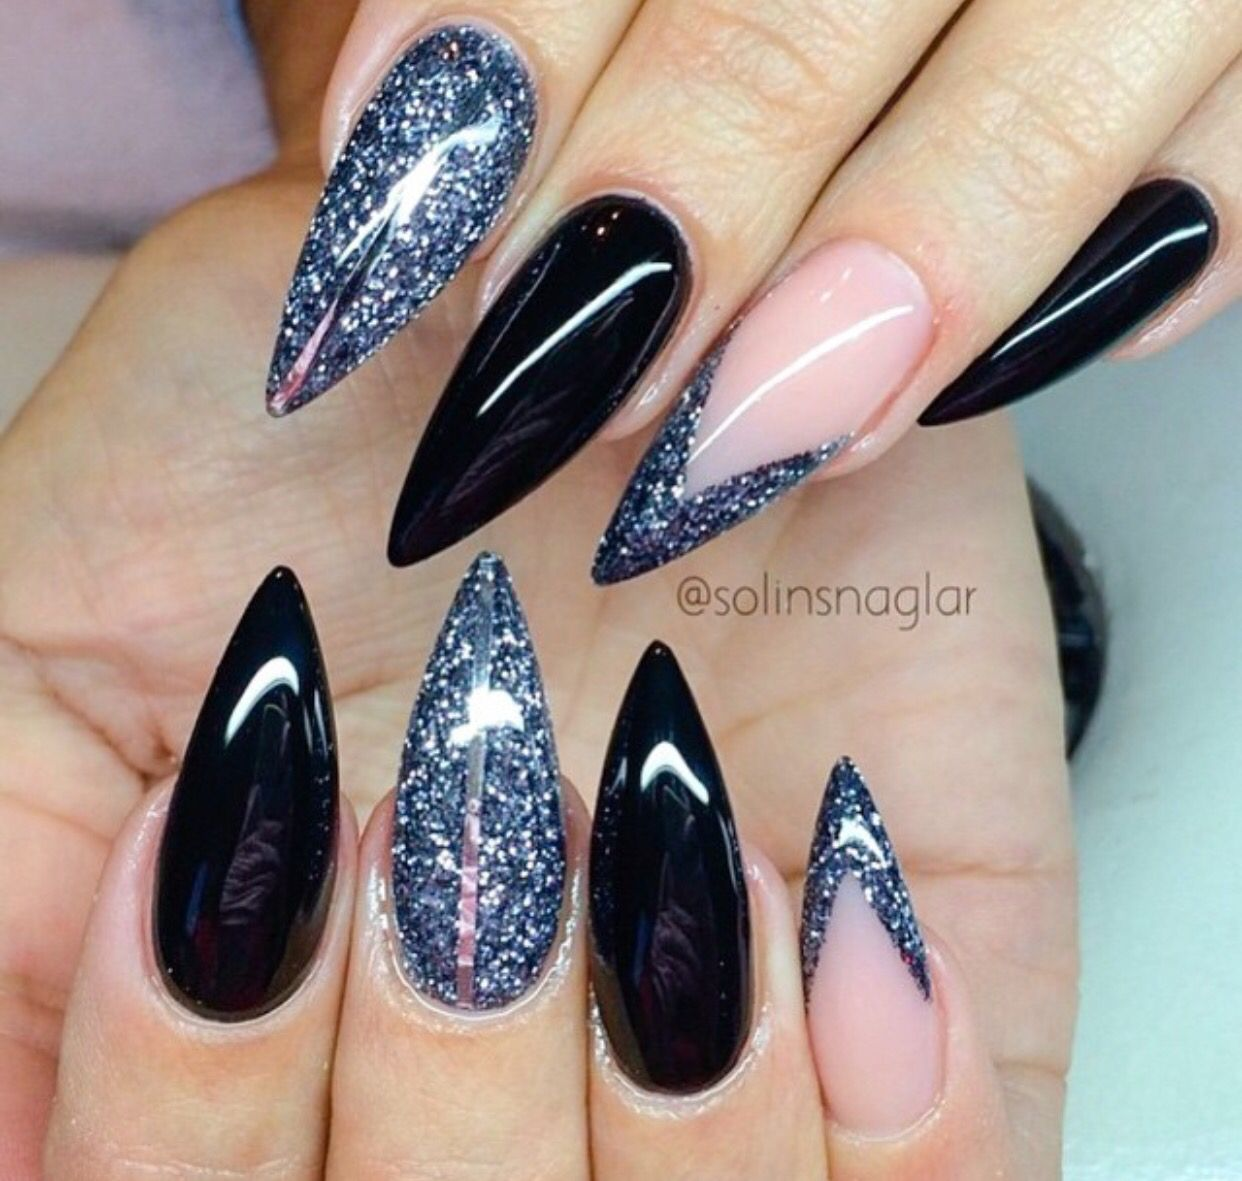 Black & Glitter Nails | Nails | Pinterest | Black glitter nails ...